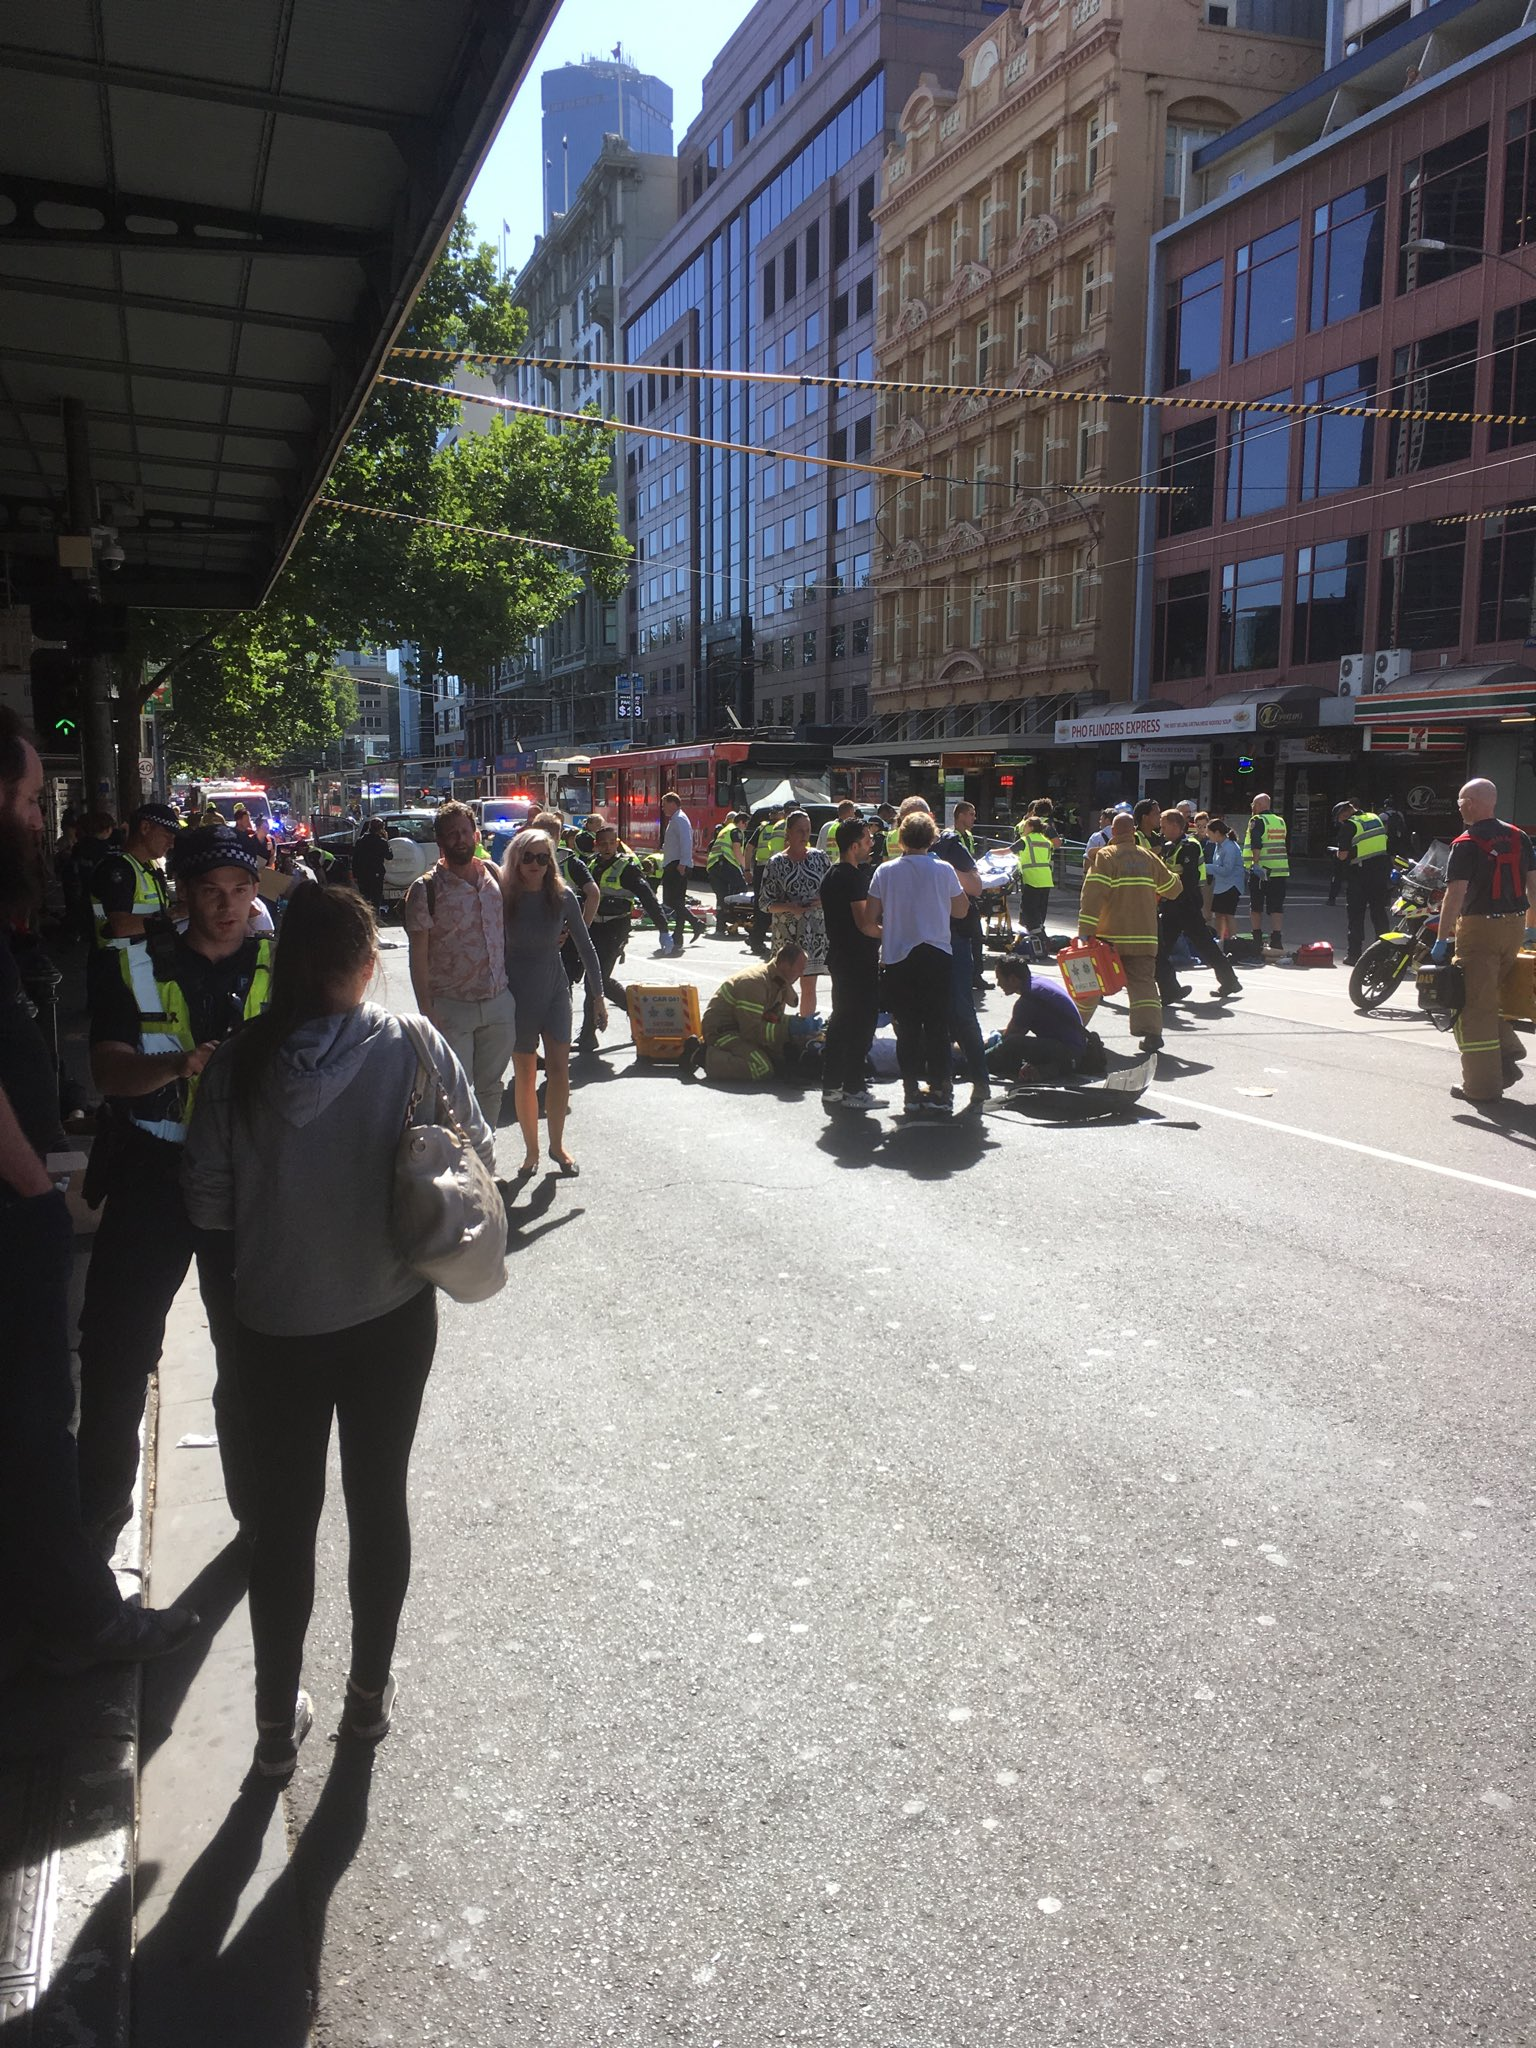 "<div class=""meta image-caption""><div class=""origin-logo origin-image none""><span>none</span></div><span class=""caption-text"">''Scene on Flinders St. White SUV has gone through pedestrians and crashed into tram stop,'' wrote a reporter for 9 News Melbourne.</span></div>"